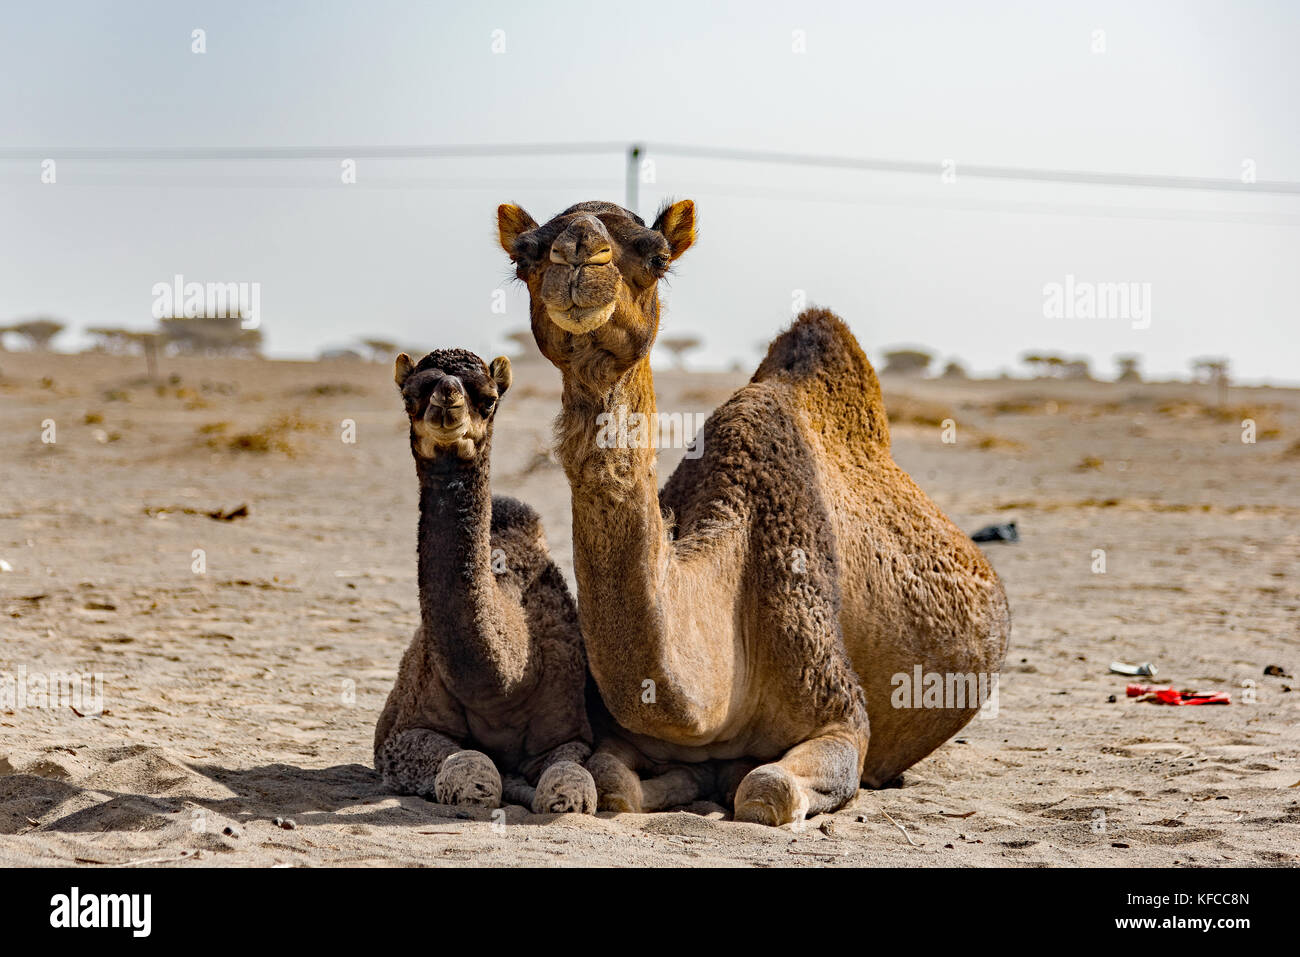 Camel mother and offspring kneeling in desert. Midmorning on camel ranch north of Jeddah (JIddah) city, Makkah (Mecca) - Stock Image